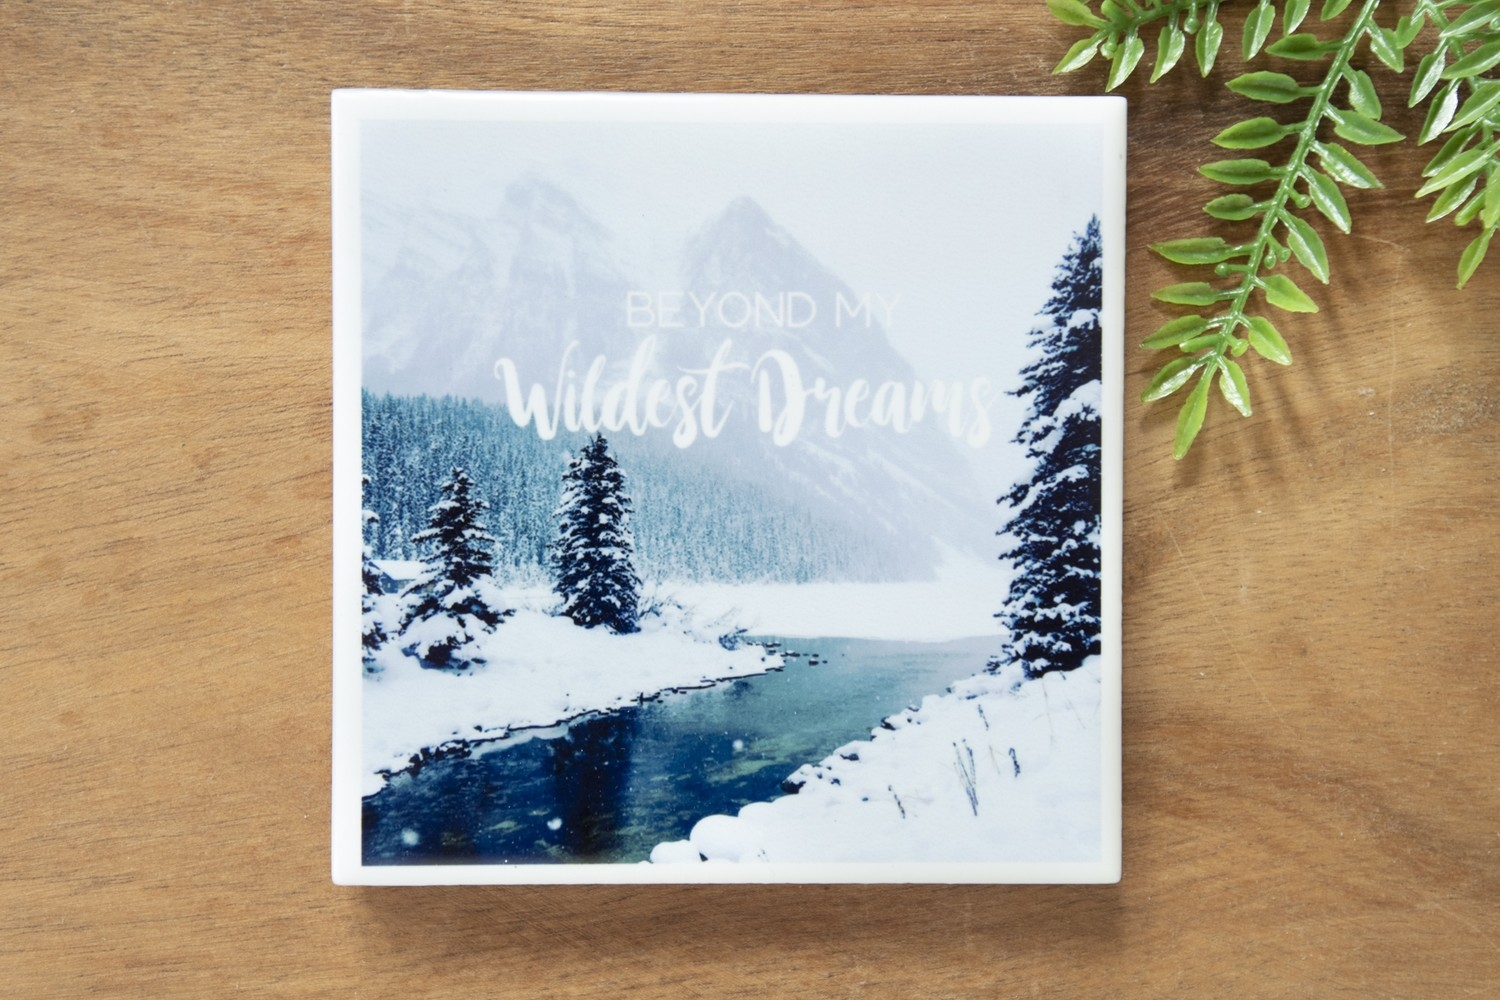 Beyond My Wildest Dreams-Nature Photo Coaster